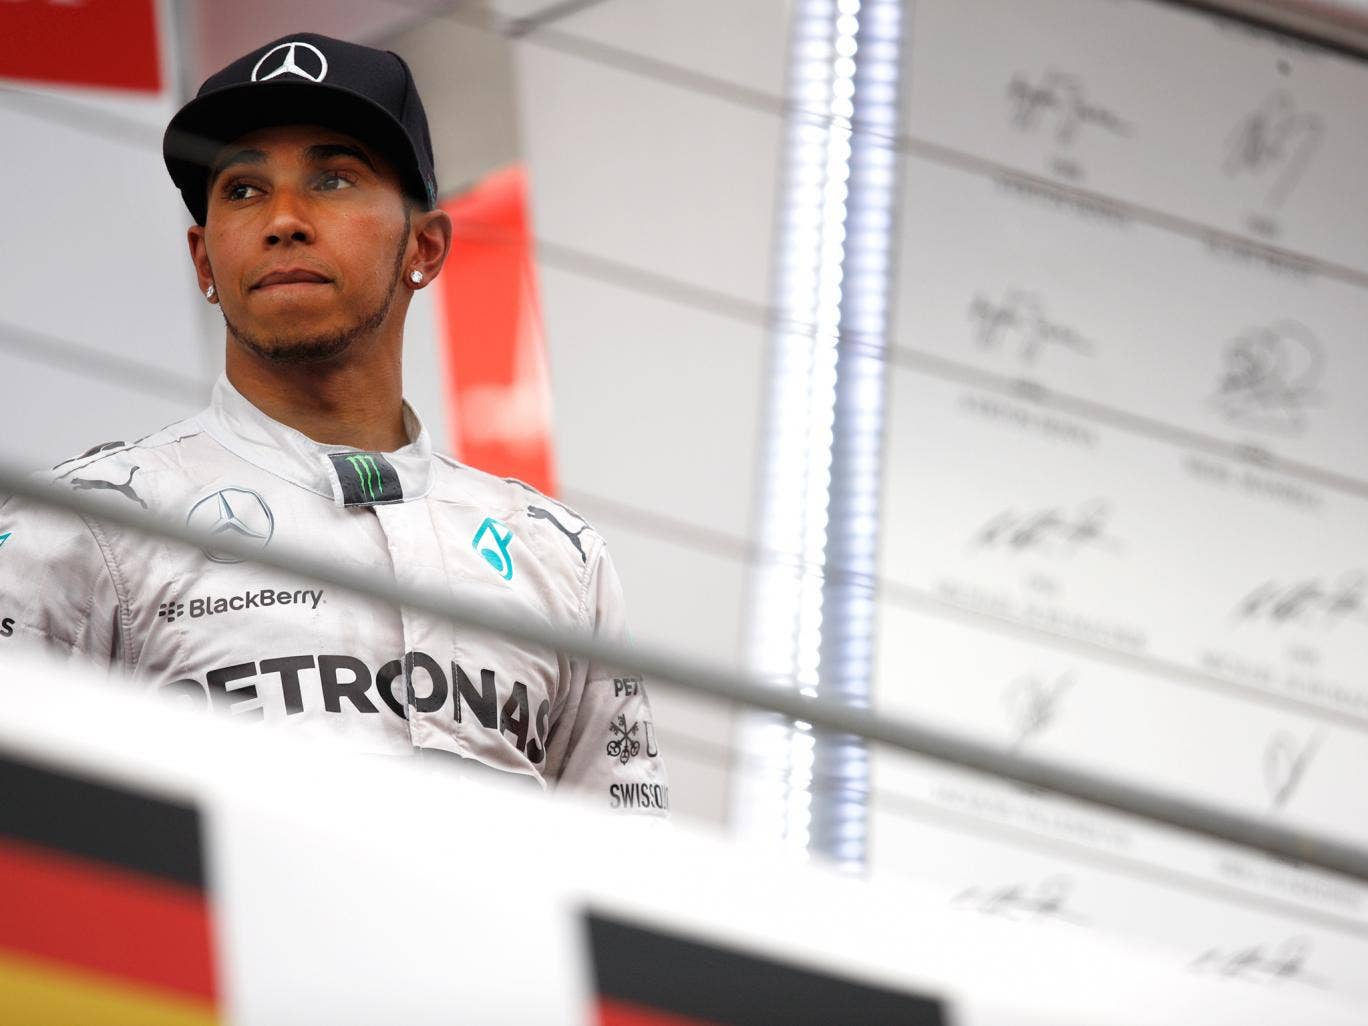 Lewis Hamilton pictured after the German GP